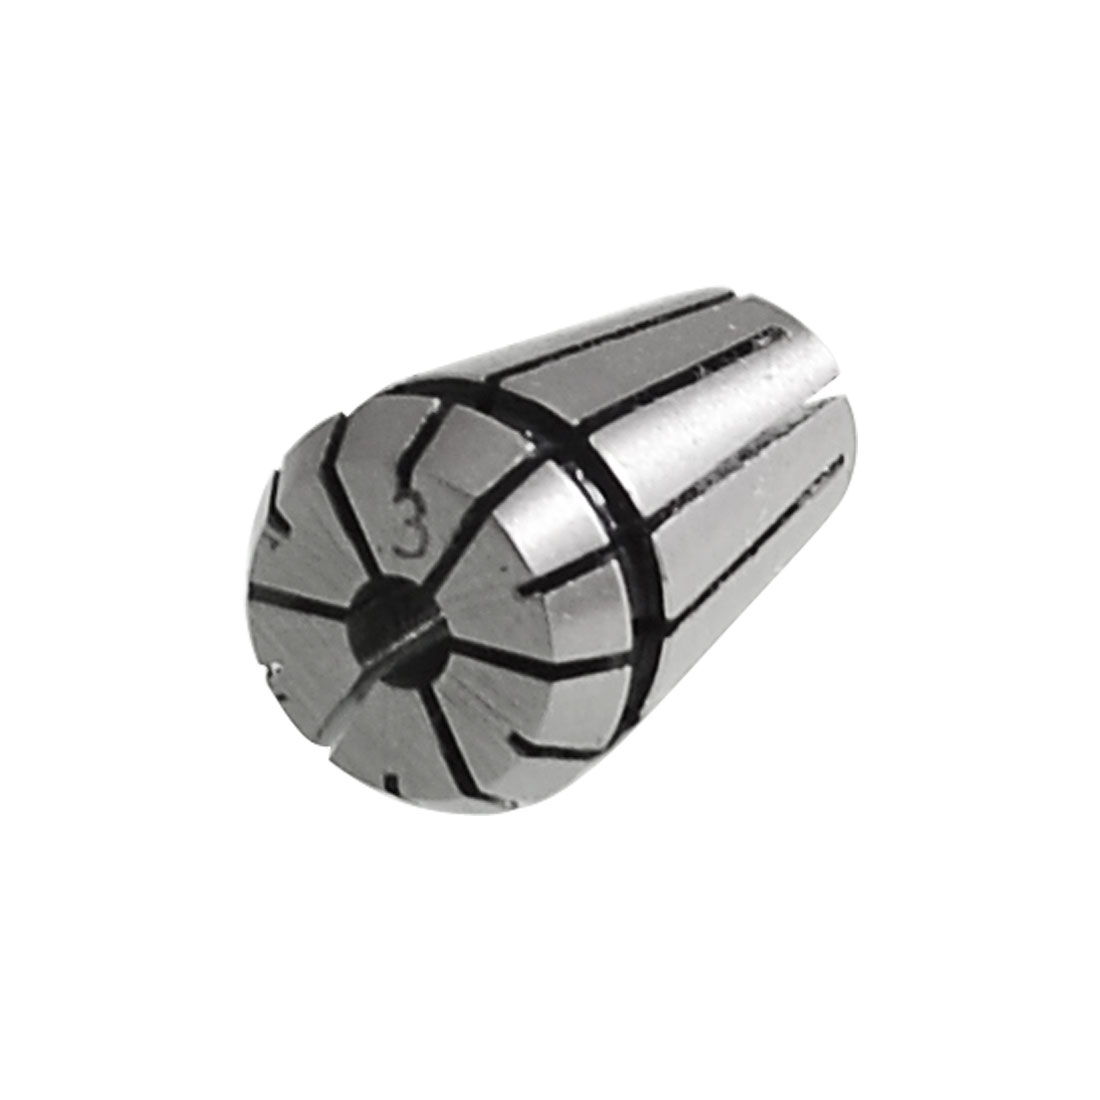 "Drilling Machine Stainless Steel 3mm 3/25"" ER11 Spring Collet Chuck"